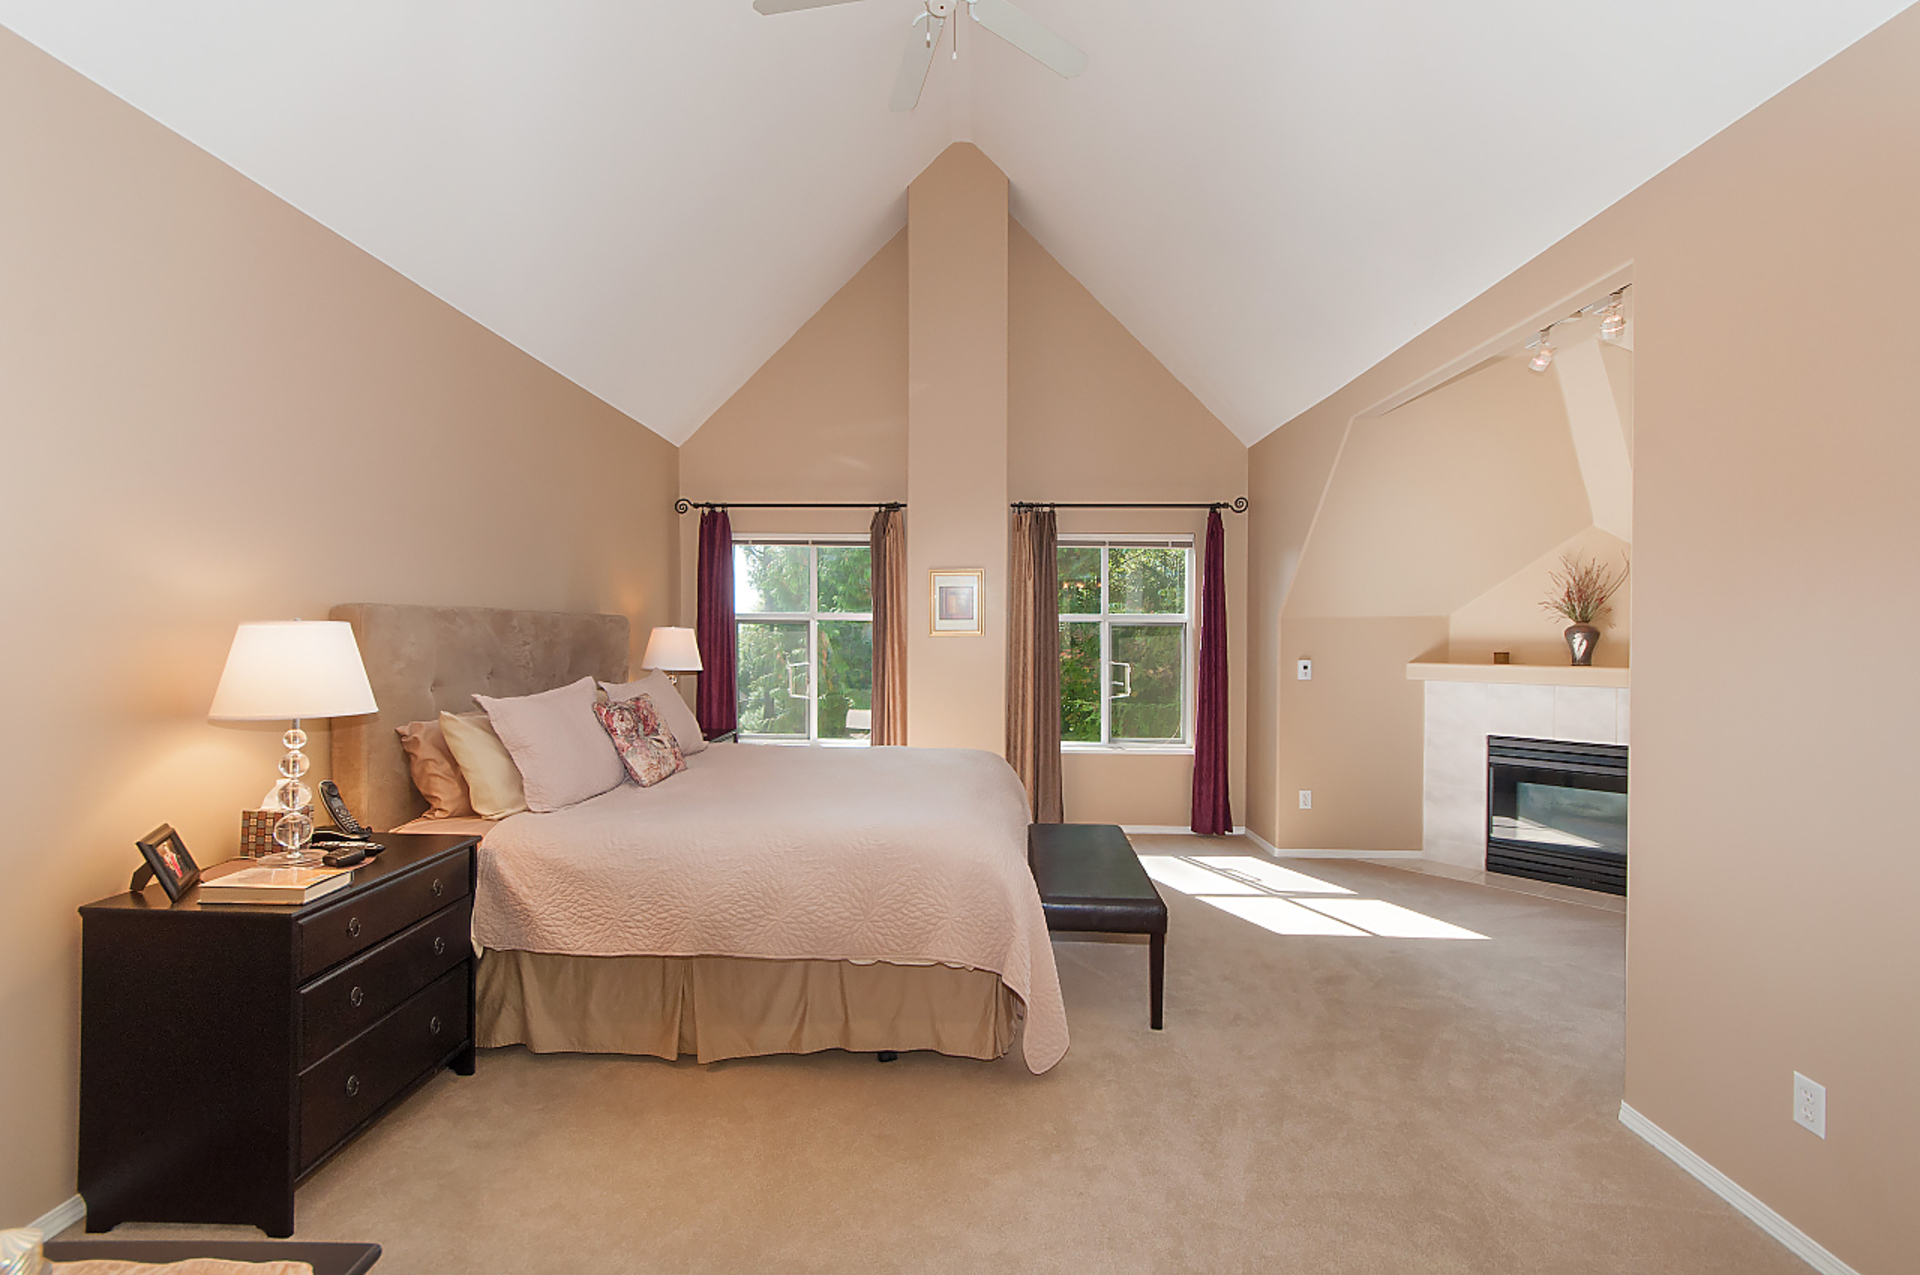 029 at 20 - 1 Aspenwood Drive, Heritage Woods PM, Port Moody